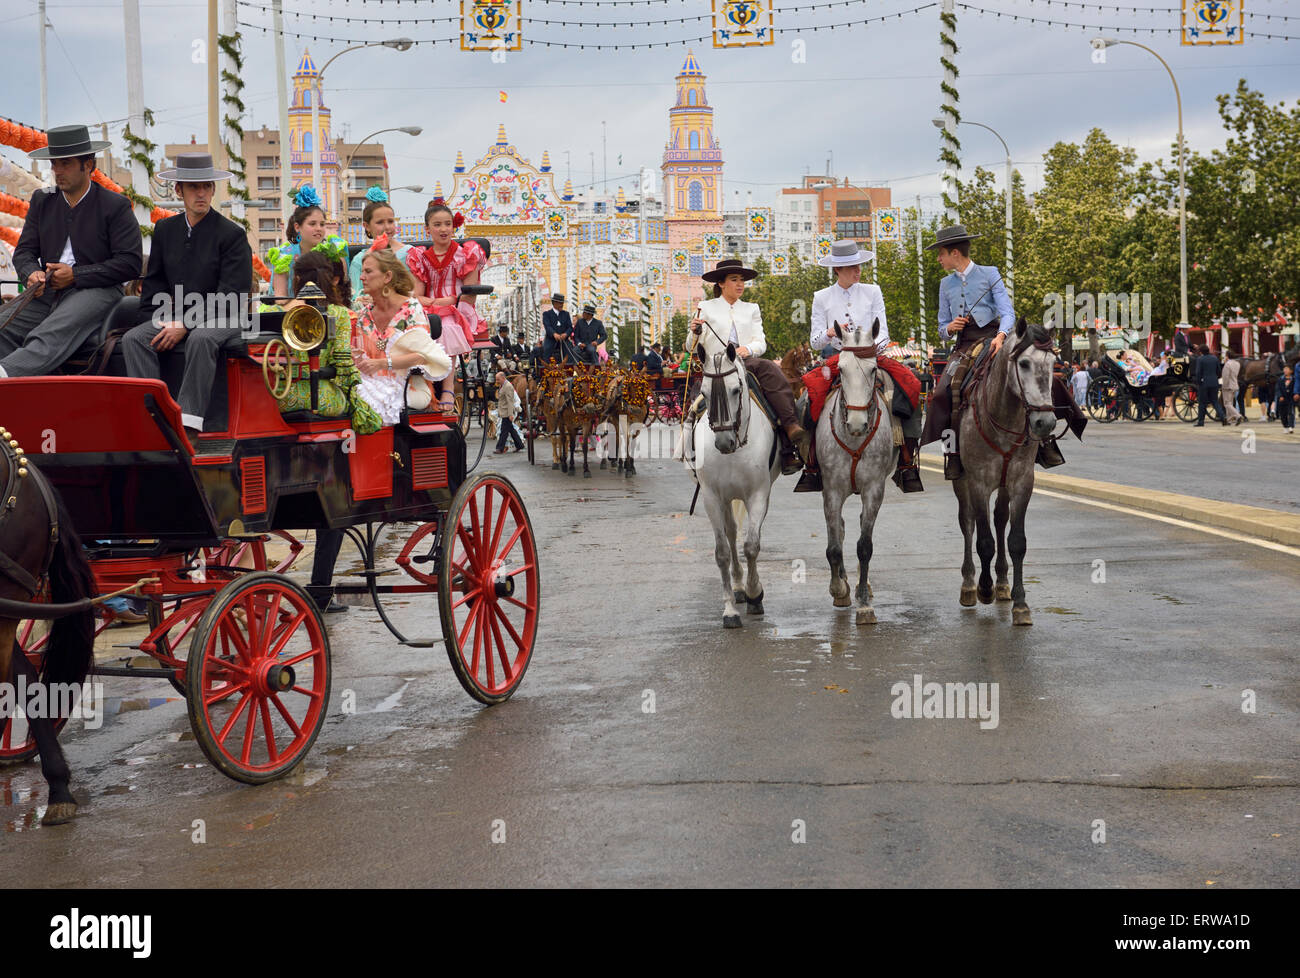 Mule drawn carriages and horseback riders on Antonio Bienvenida street with Main Gate 2015 Seville April Fair Spain - Stock Image